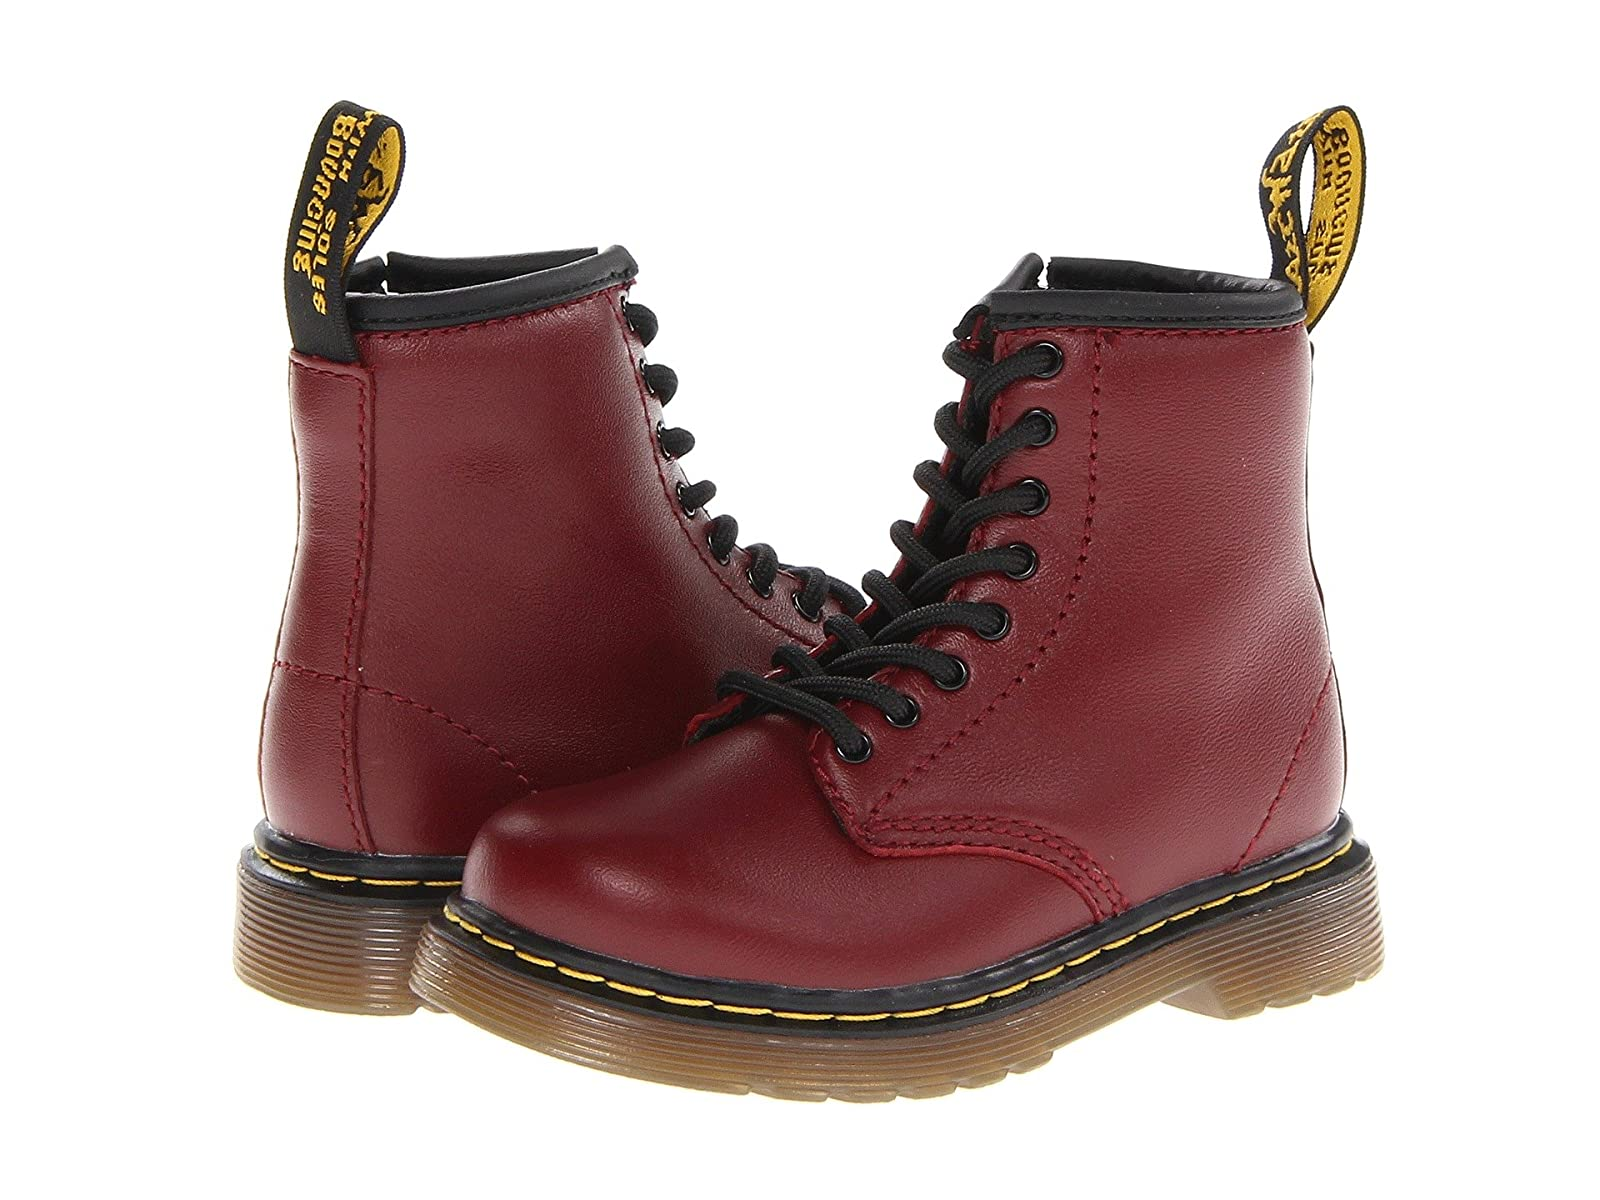 Gentleman/Lady:Dr. Drop! Martens Kid's Collection 1460 Toddler Brooklee Boot (Toddler):Drip! Drop! Gentleman/Lady:Dr. Easy to use drops! 8afd89